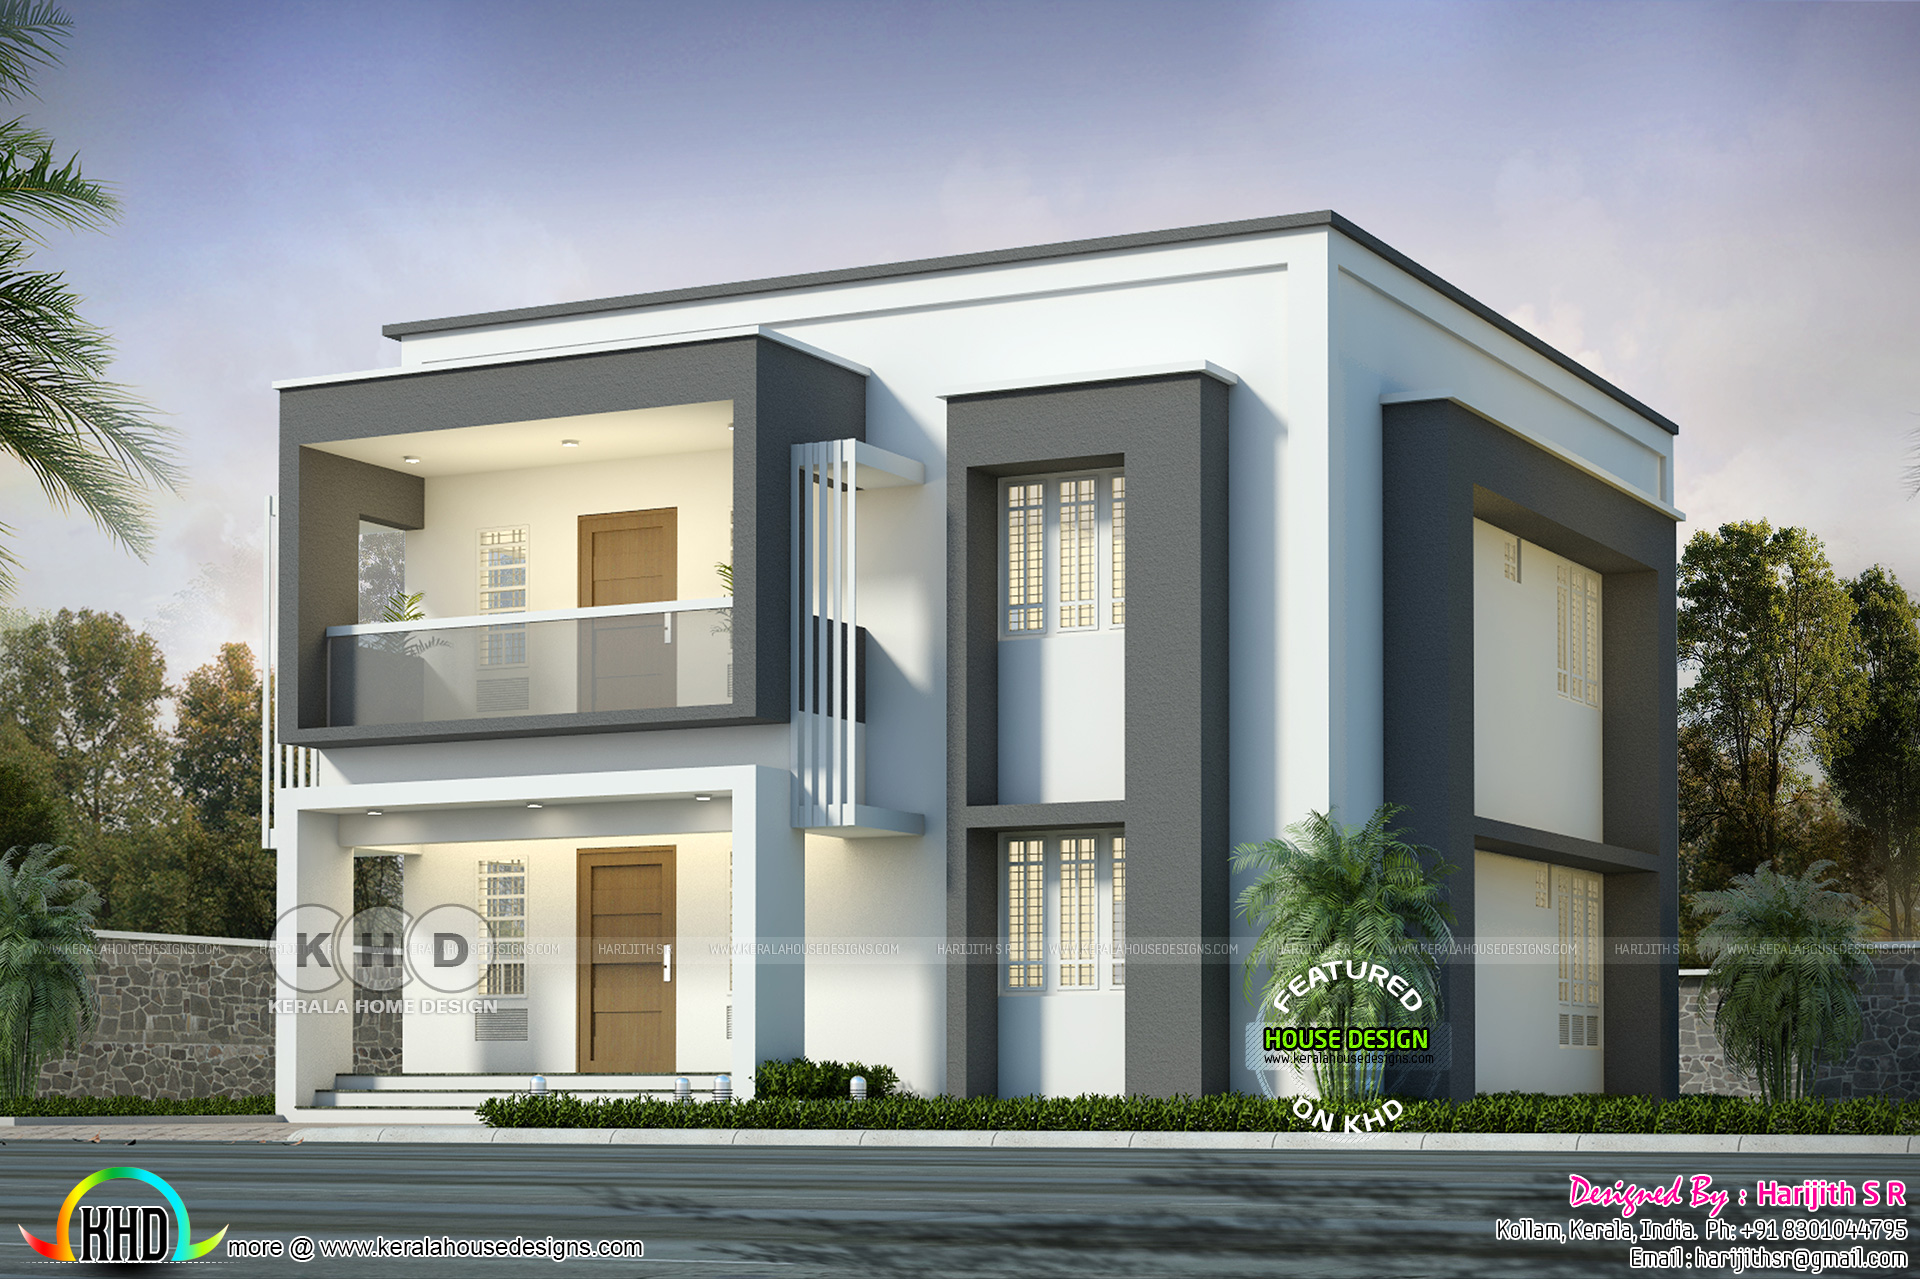 4 bedroom flat roof house in two different paintings ... on kerala home stair, kerala home style, kerala home doors, kerala home paint, kerala home interiors, kerala home kitchen, kerala home renovation,